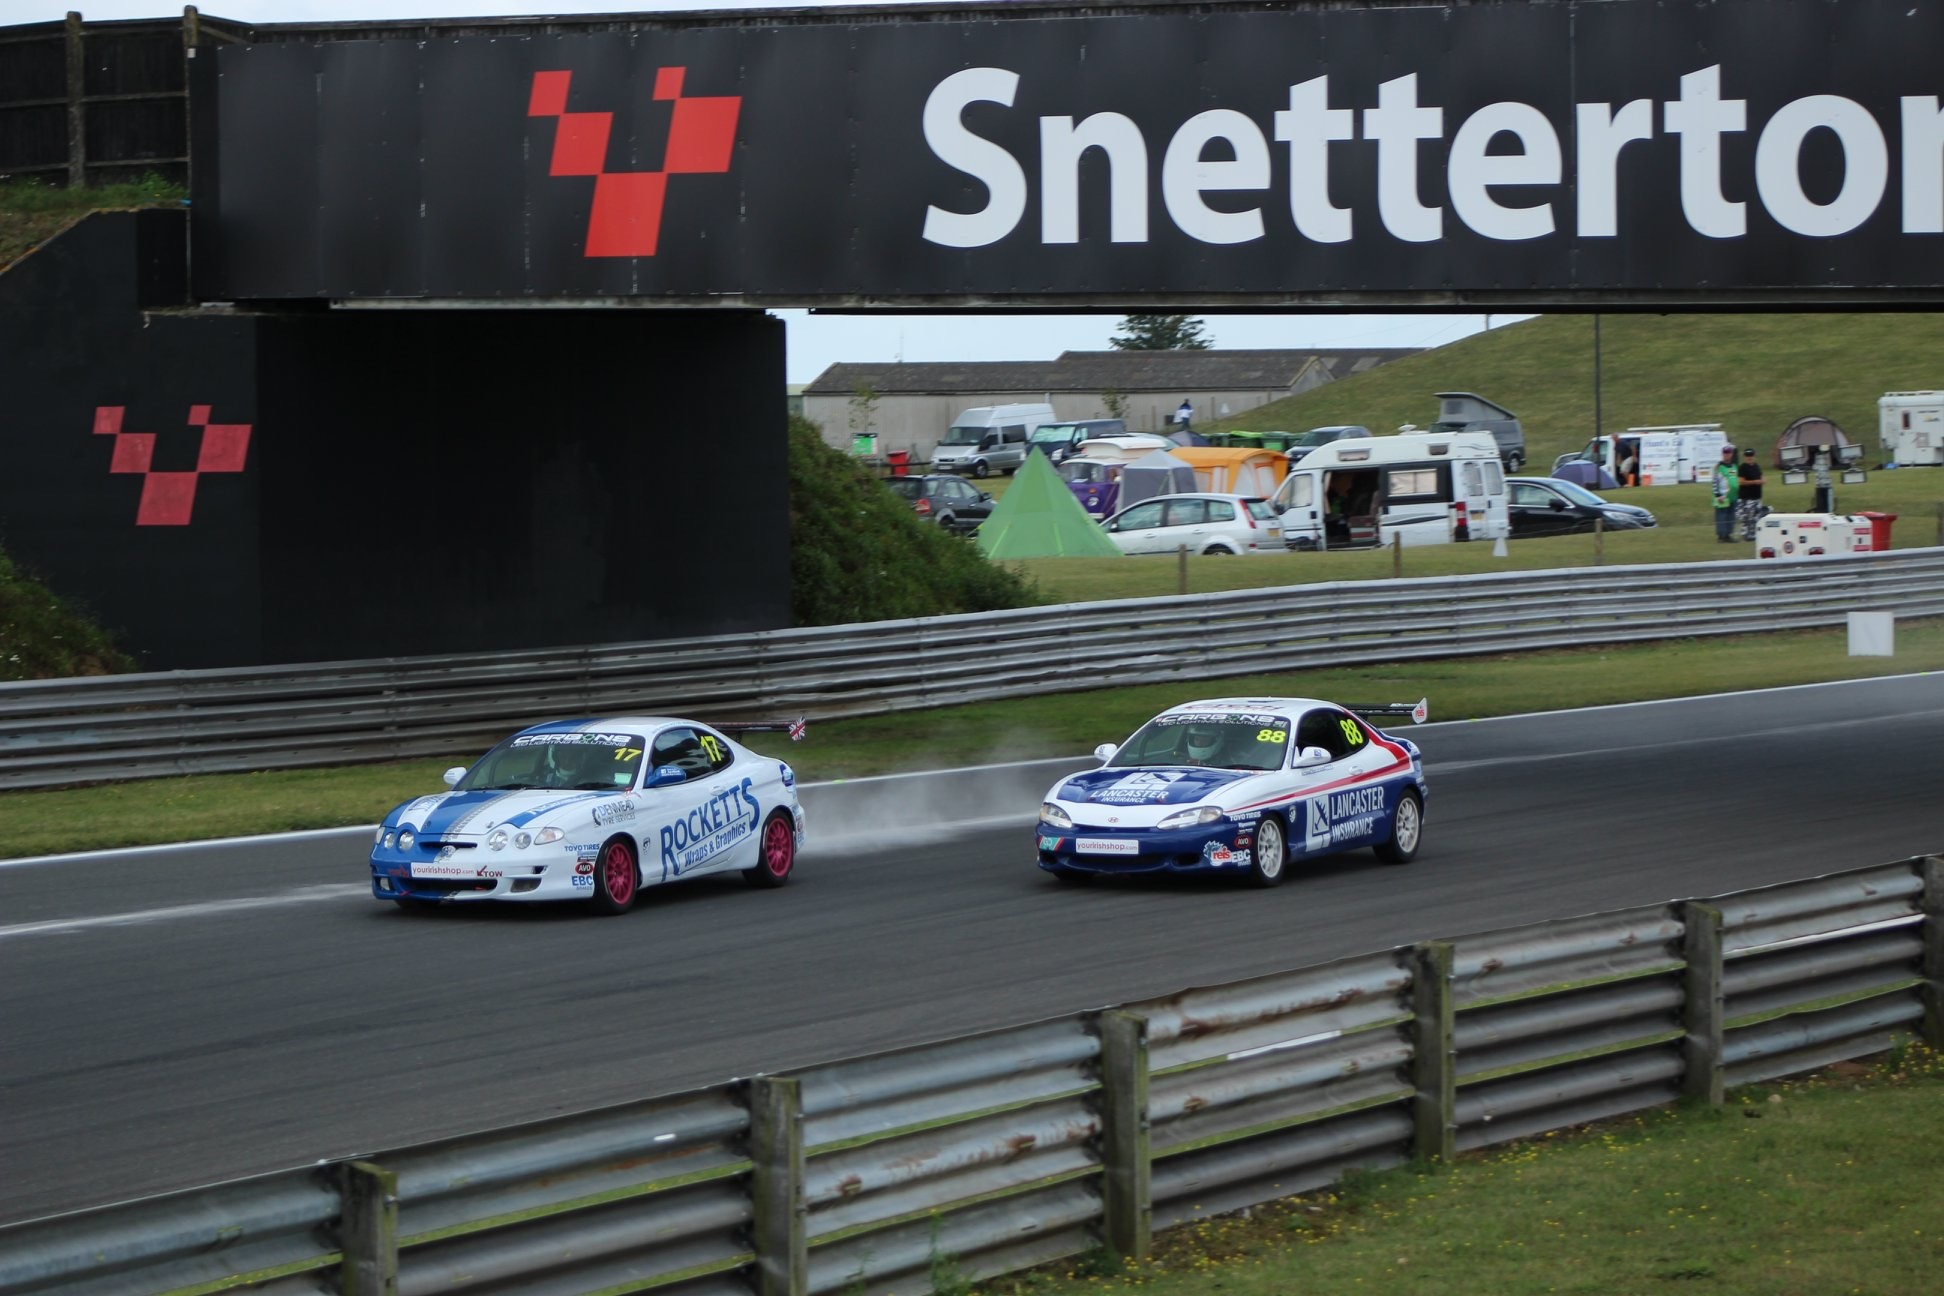 Alex attacking Wayne Rockett for the lead going into the esses